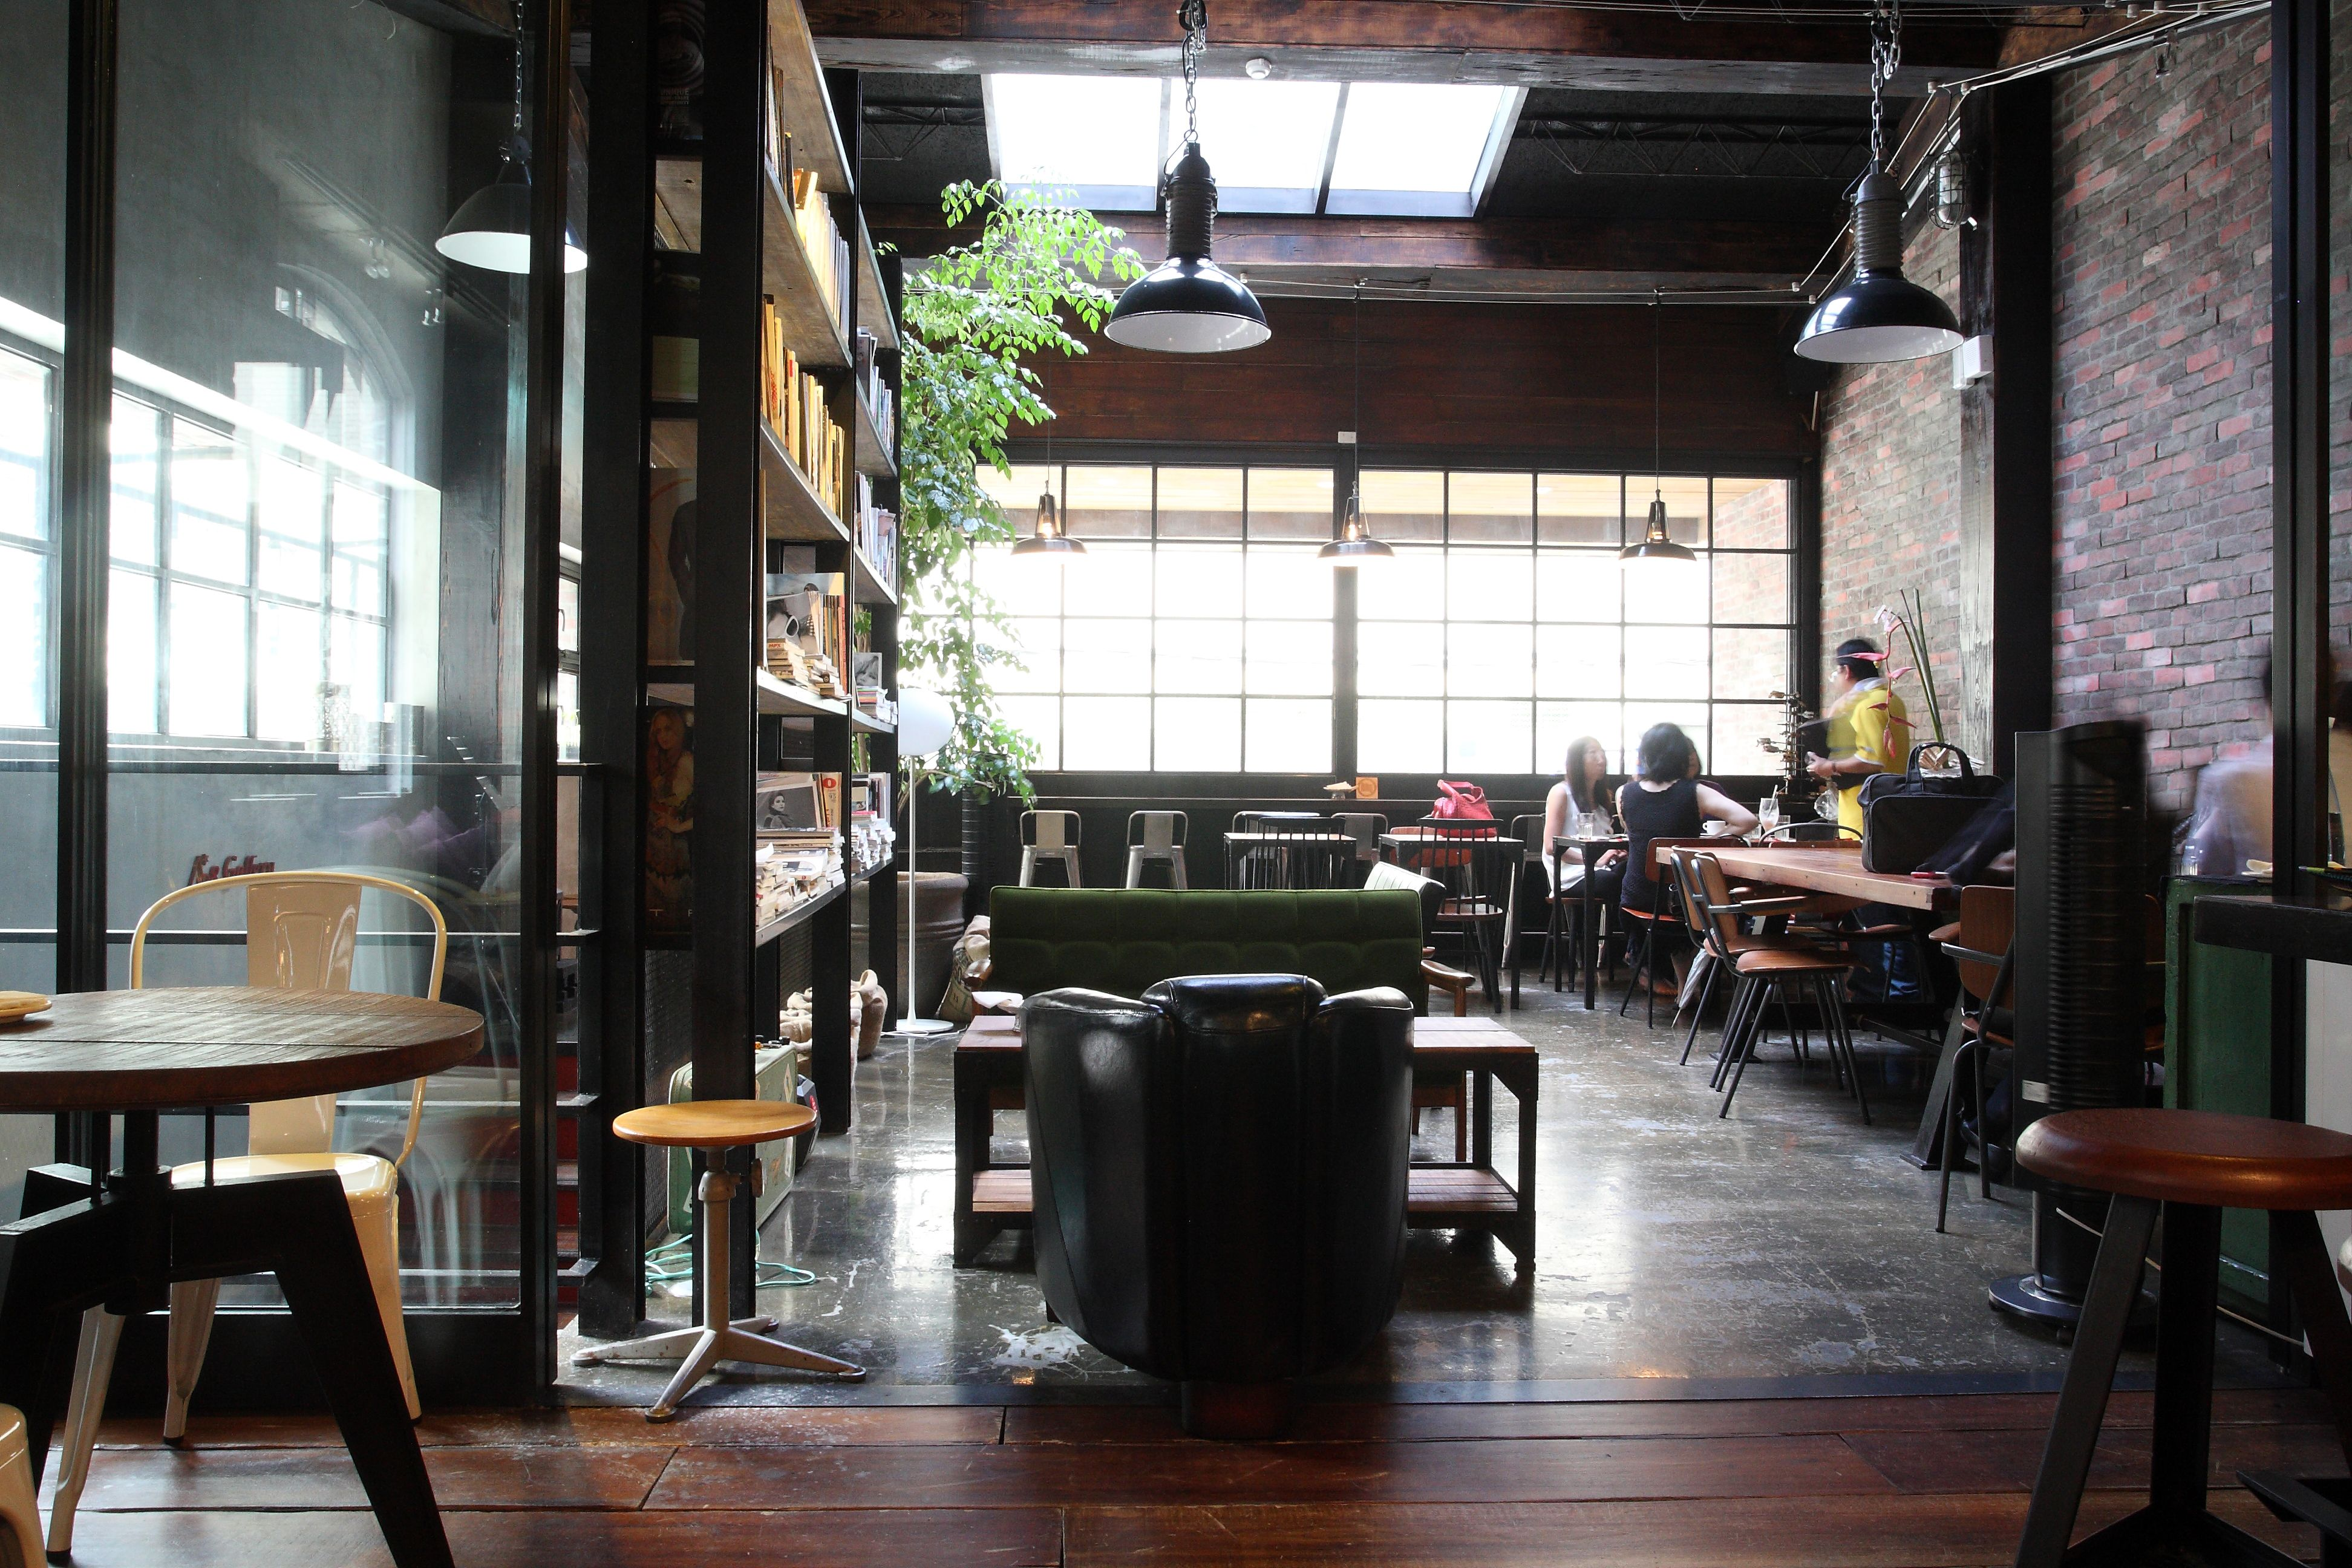 A8 Cafe New York Loft Style Cafe In Taipei Cafe Interior Design New York Loft Cool Cafe